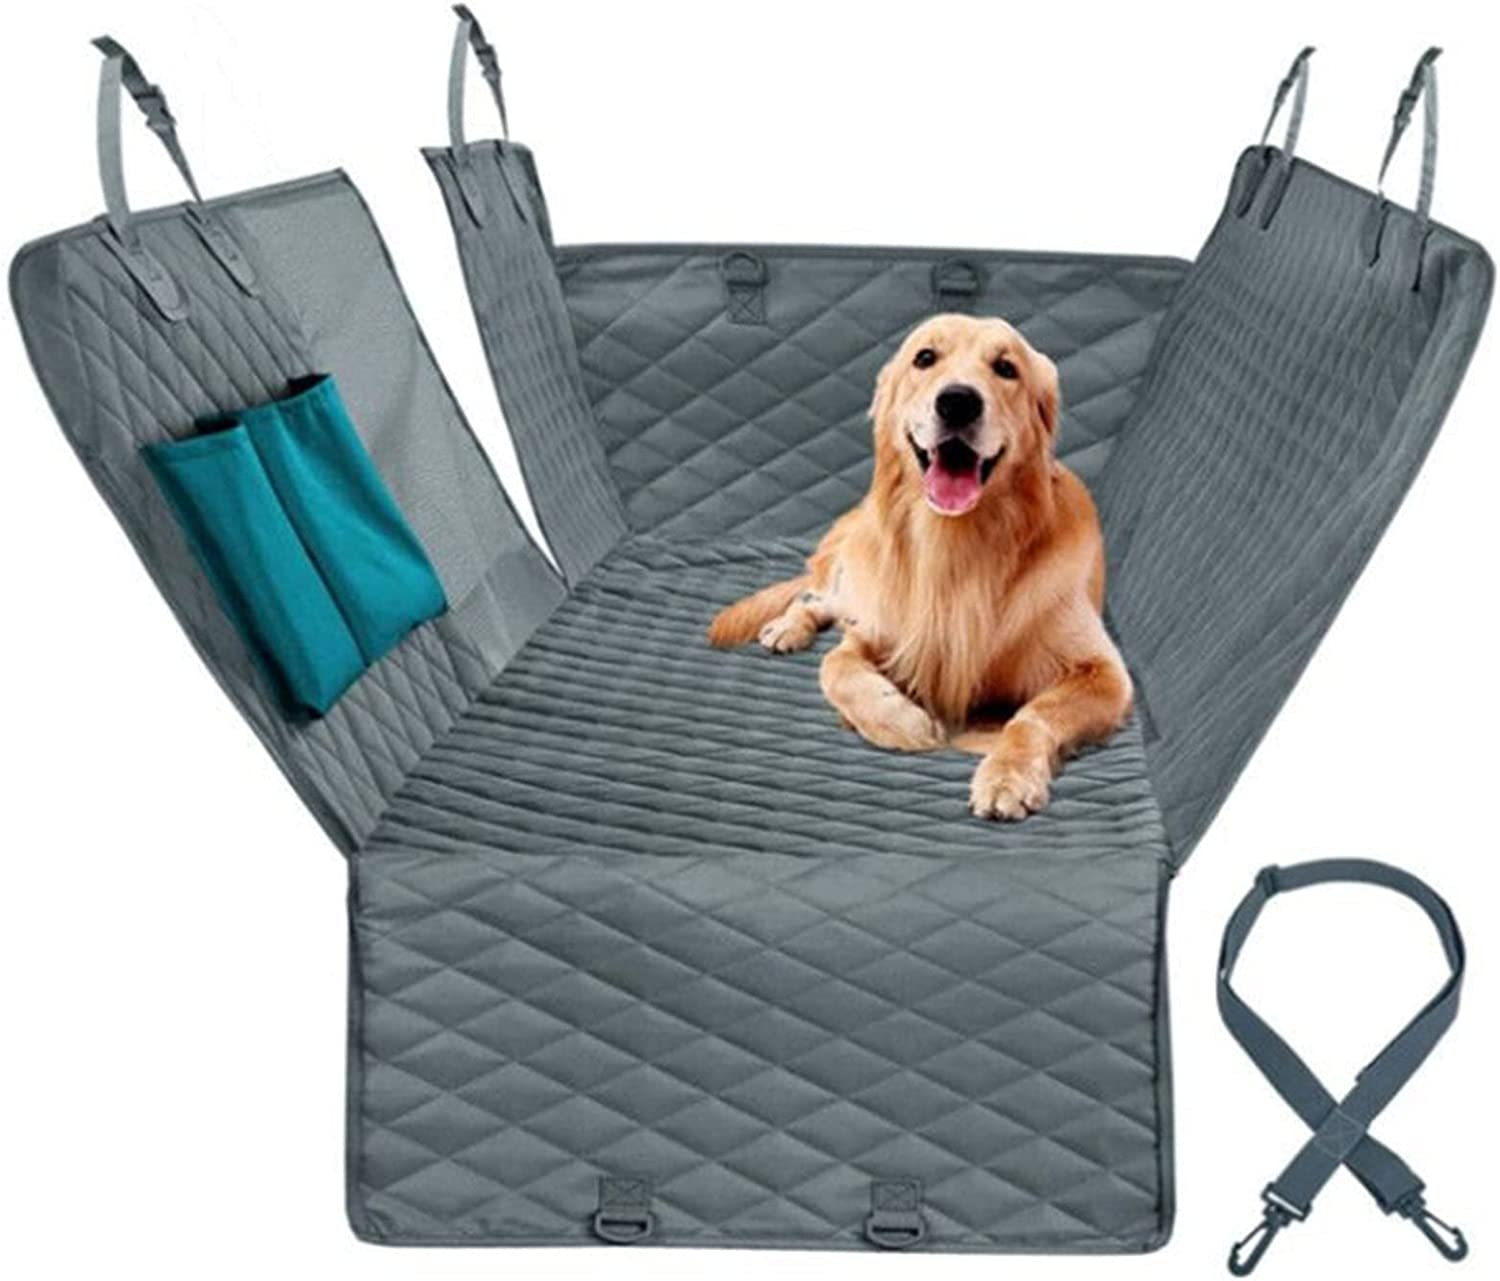 HGDR Pet Car Mat Nashville-Davidson Mall Dog Free shipping anywhere in the nation Seat Mesh Rear with Window Cover